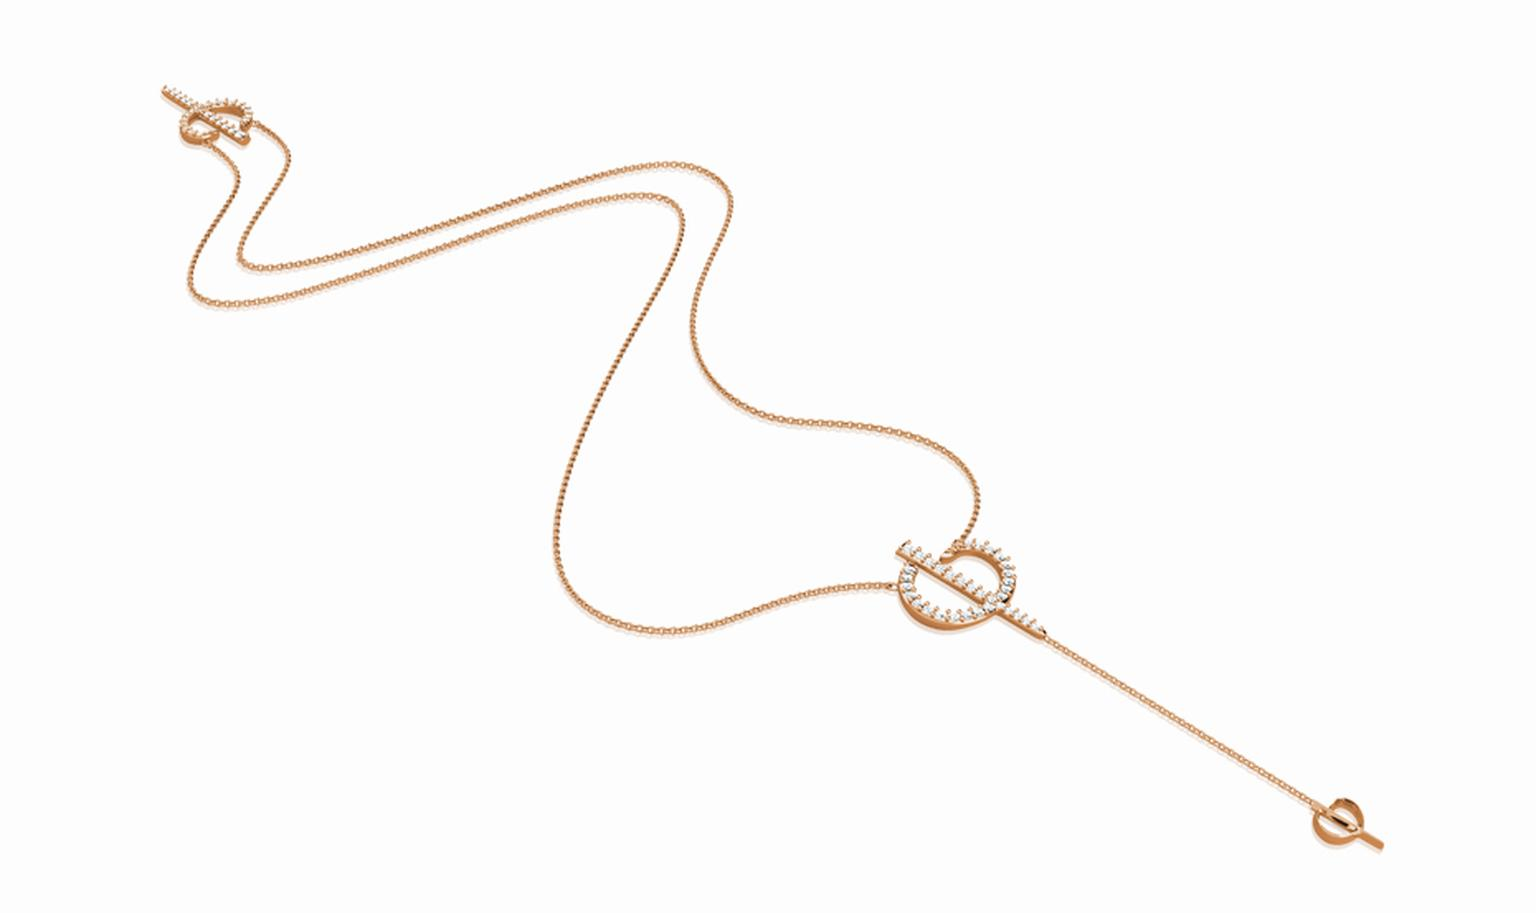 Phioro jewellery rose gold Rosary necklace with diamond pave.